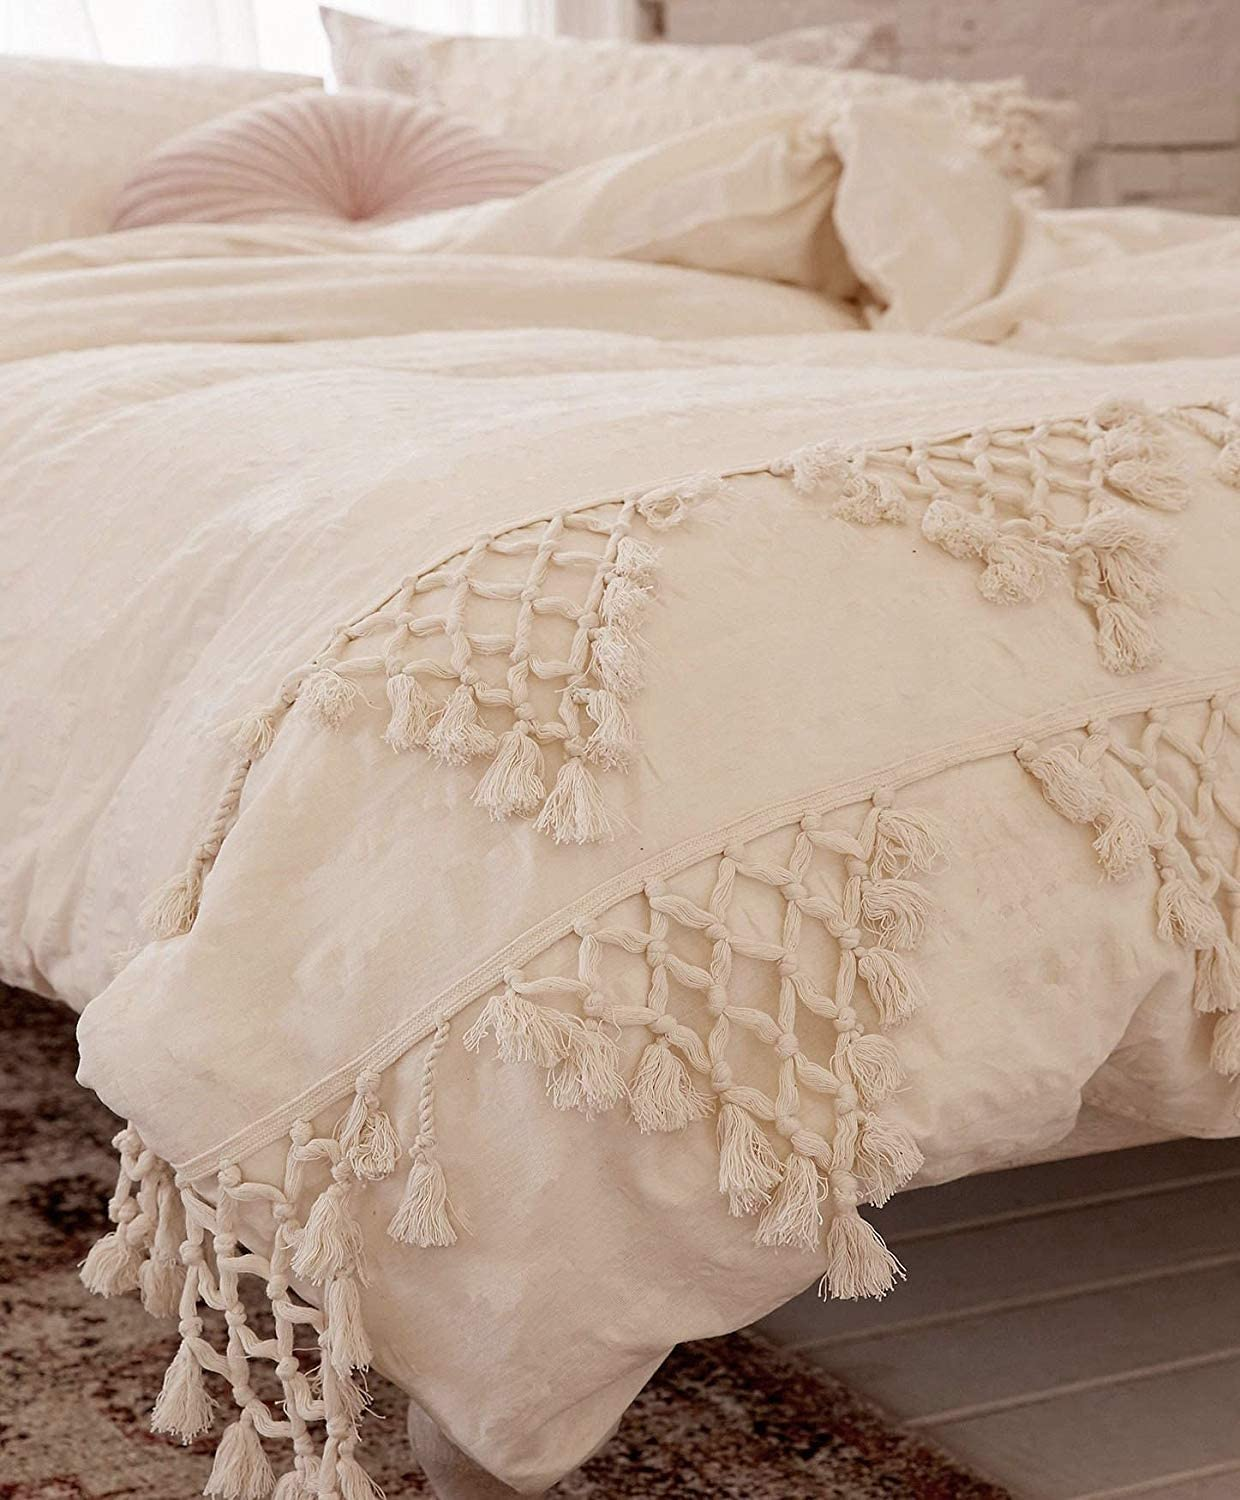 Flber Tufted Tassel Duvet Cover Lattice Boho Bedding,King Size